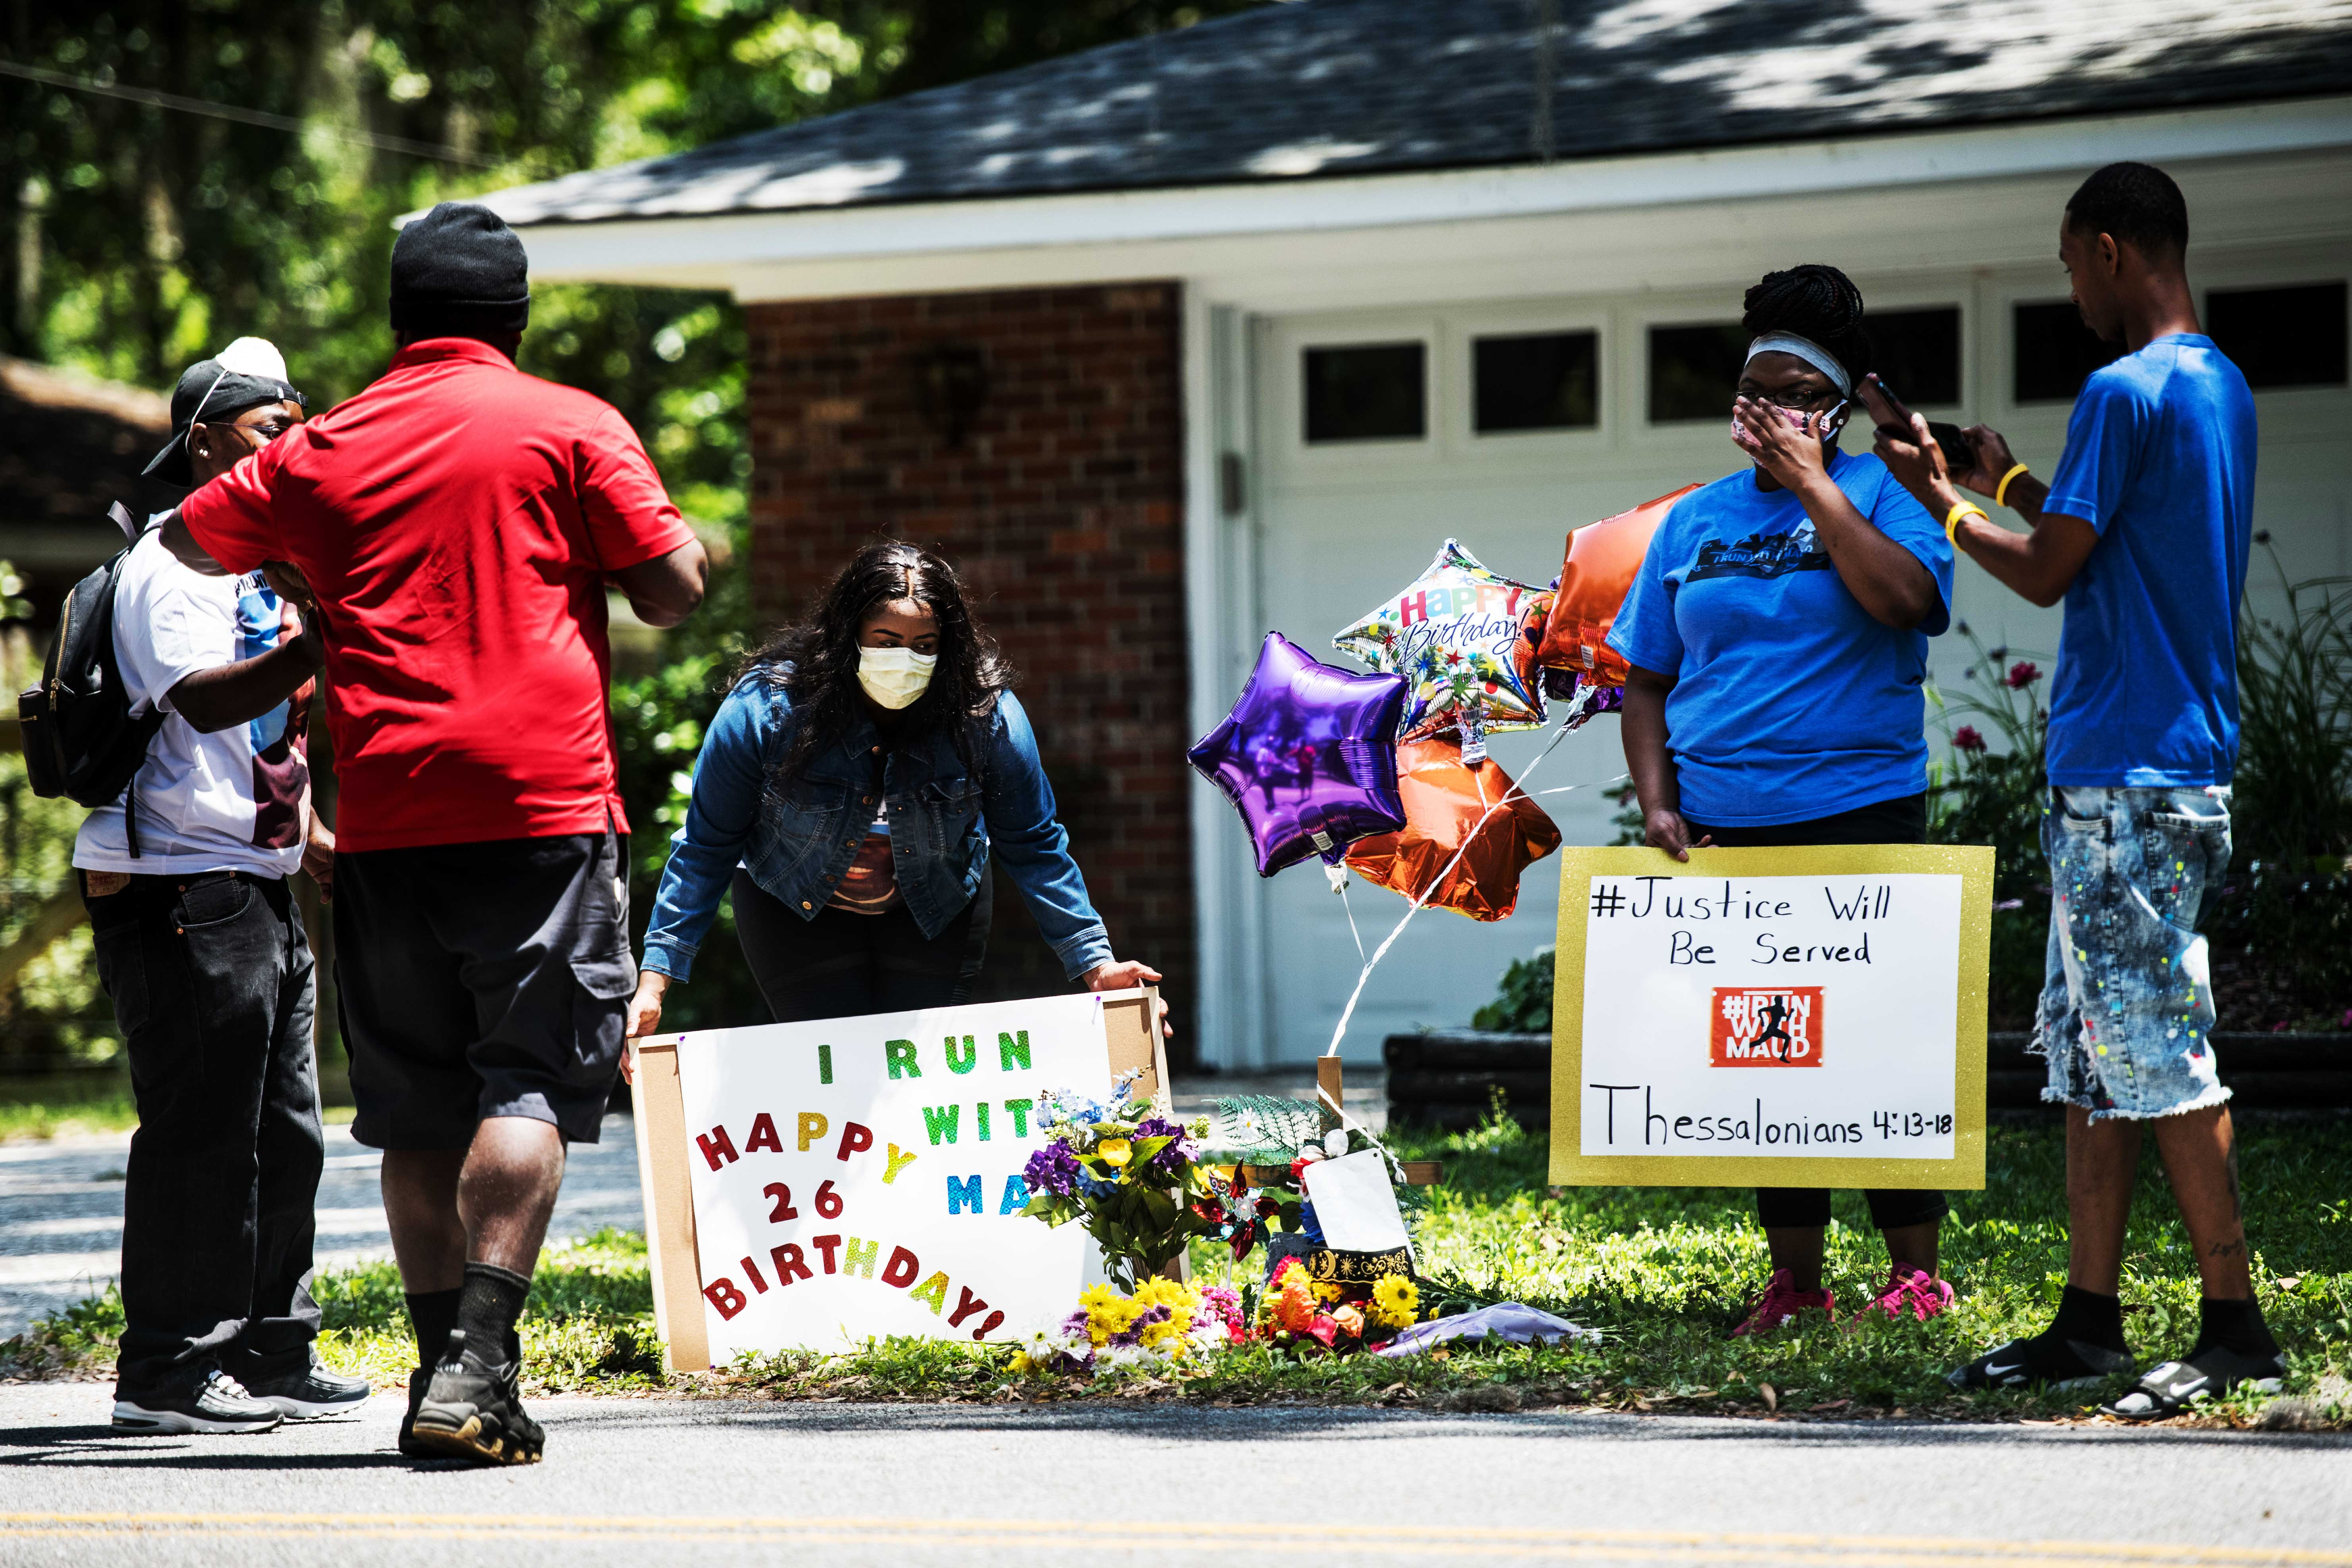 Gathered on the front lawn, standing on the grass with balloons and flowers, a group of black demonstrators hold signs at a memorial for Ahmaud Arbery near where he was shot and killed in Brunswick, Georgia, on May 8.